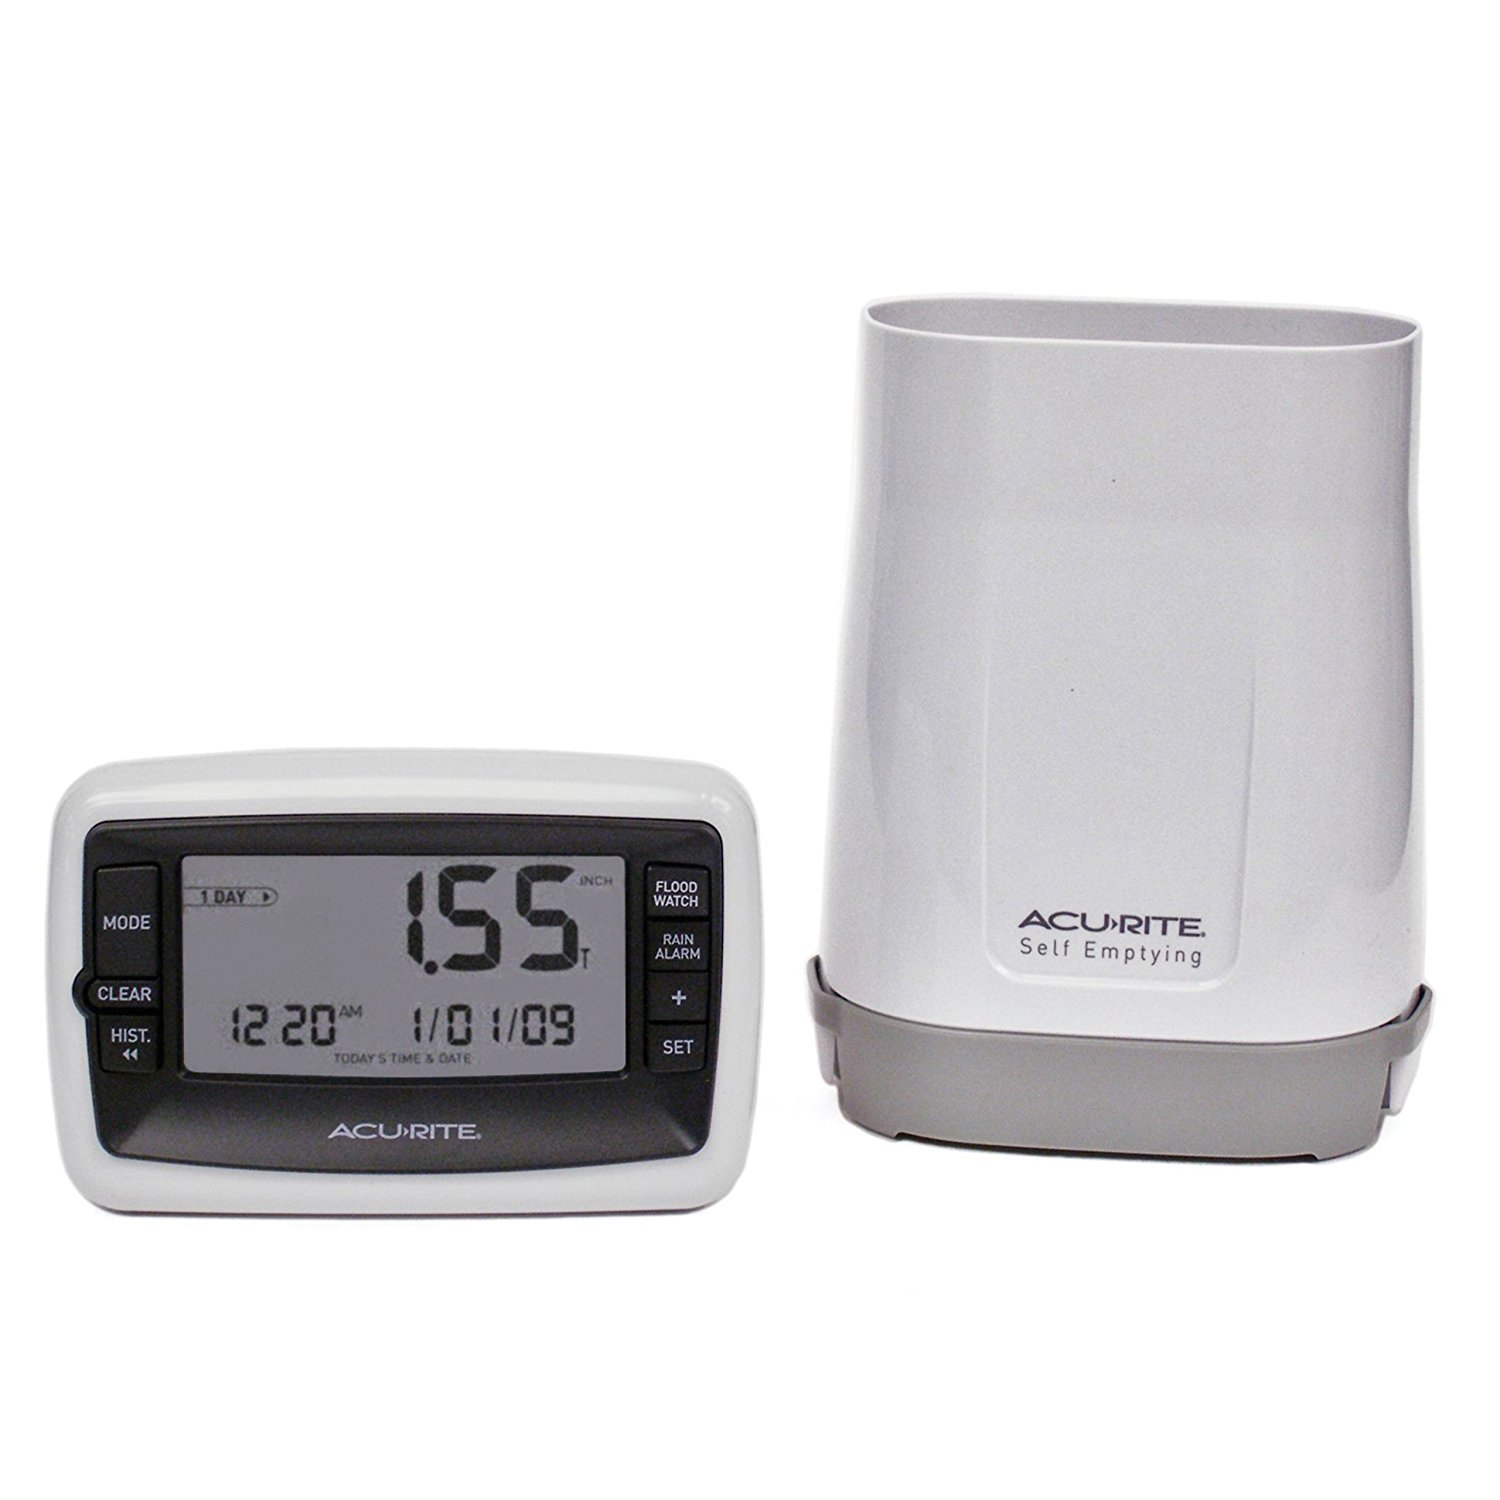 00899 Deluxe Wireless Rain Gauge, USA, Brand AcuRite by